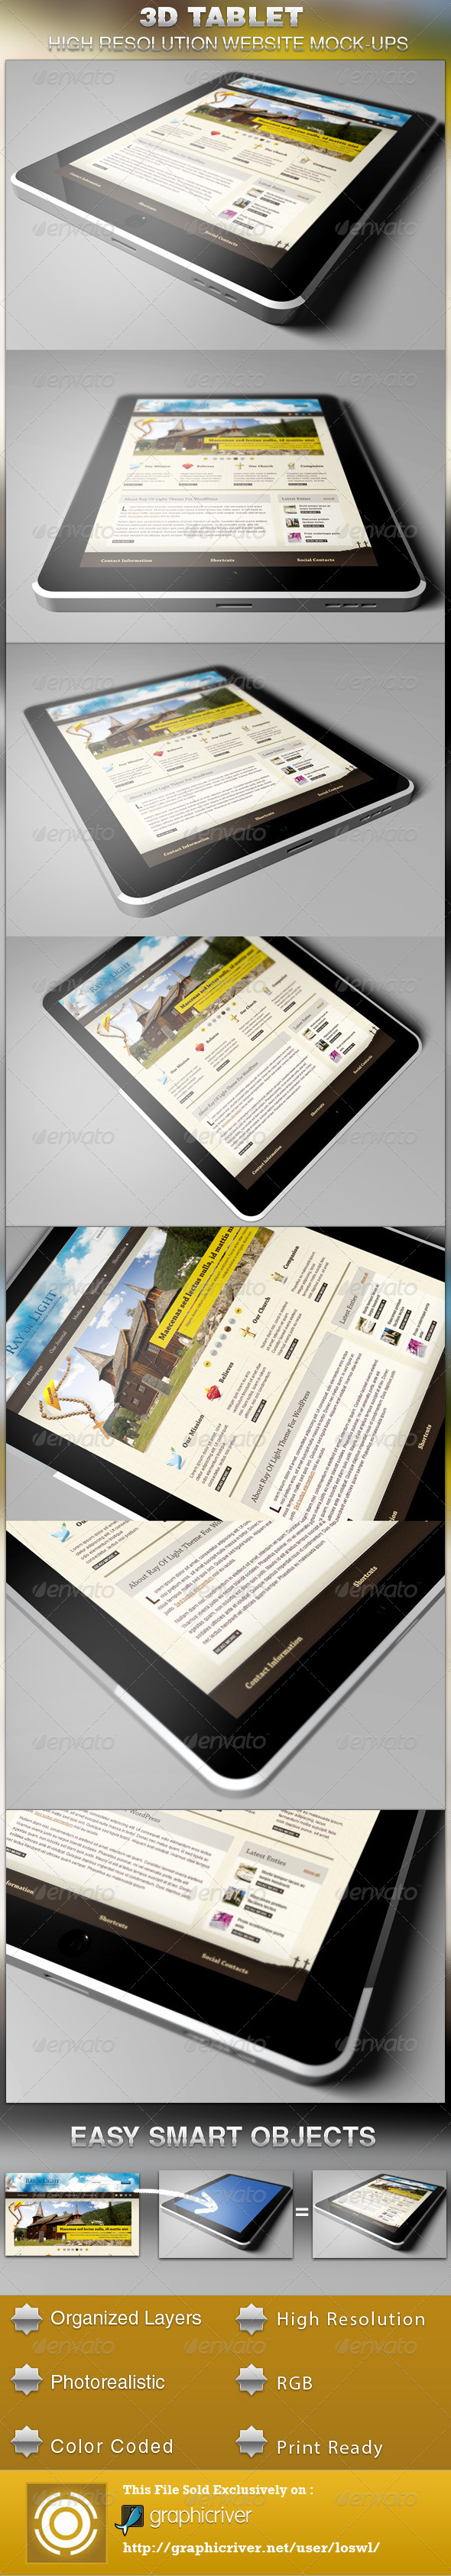 GraphicRiver 3D Tablet Website Mockup Template 5180189